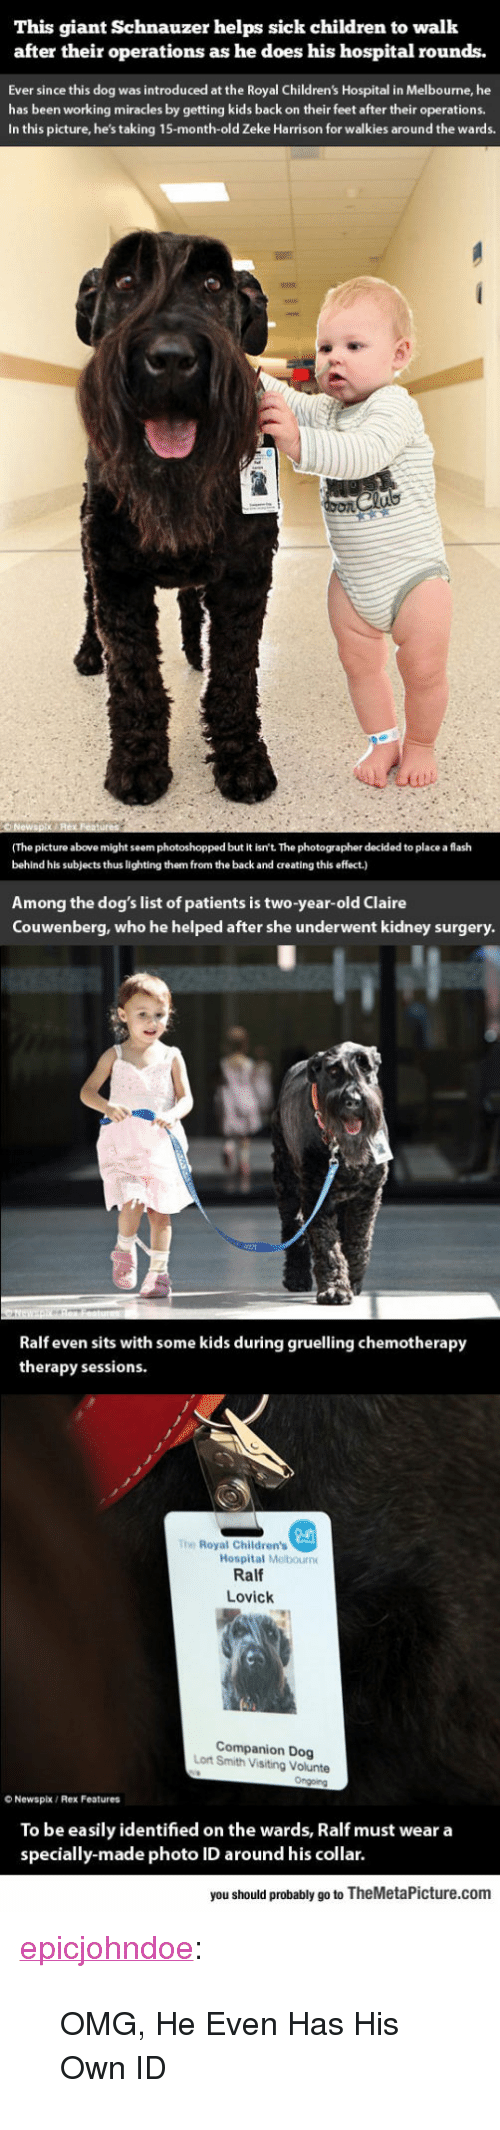 "Children, Dogs, and Omg: This giant Schnauzer helps sick children to walk  after their operations as he does his hospital rounds.  Ever since this dog was introduced at the Royal Children's Hospital in Melbourne, he  has been working miracles by getting kids back on their feet after their operations.  In this picture, he's taking 15-month-old Zeke Harrison for walkies around the wards.  (The picture above might seem photoshopped but it isn't. The photographer decided to place a flash  behind his subjects thus lighting them from the back and creating this effect.)  Among the dog's list of patients is two-year-old Claire  Couwenberg, who he helped after she underwent kidney surgery  Ralf even sits with some kids during gruelling chemotherapy  therapy sessions  The Royal Children's  Hospital Melbourn  Ralf  Lovick  Companion Dog  Lort Smith Visiting Volunte  O Newspix/ Rex Features  To be easily identified on the wards, Ralf must wear a  specially-made photo ID around his collar.  you should probably go to TheMetaPicture.com <p><a href=""https://epicjohndoe.tumblr.com/post/170360145056/omg-he-even-has-his-own-id"" class=""tumblr_blog"">epicjohndoe</a>:</p>  <blockquote><p>OMG, He Even Has His Own ID</p></blockquote>"